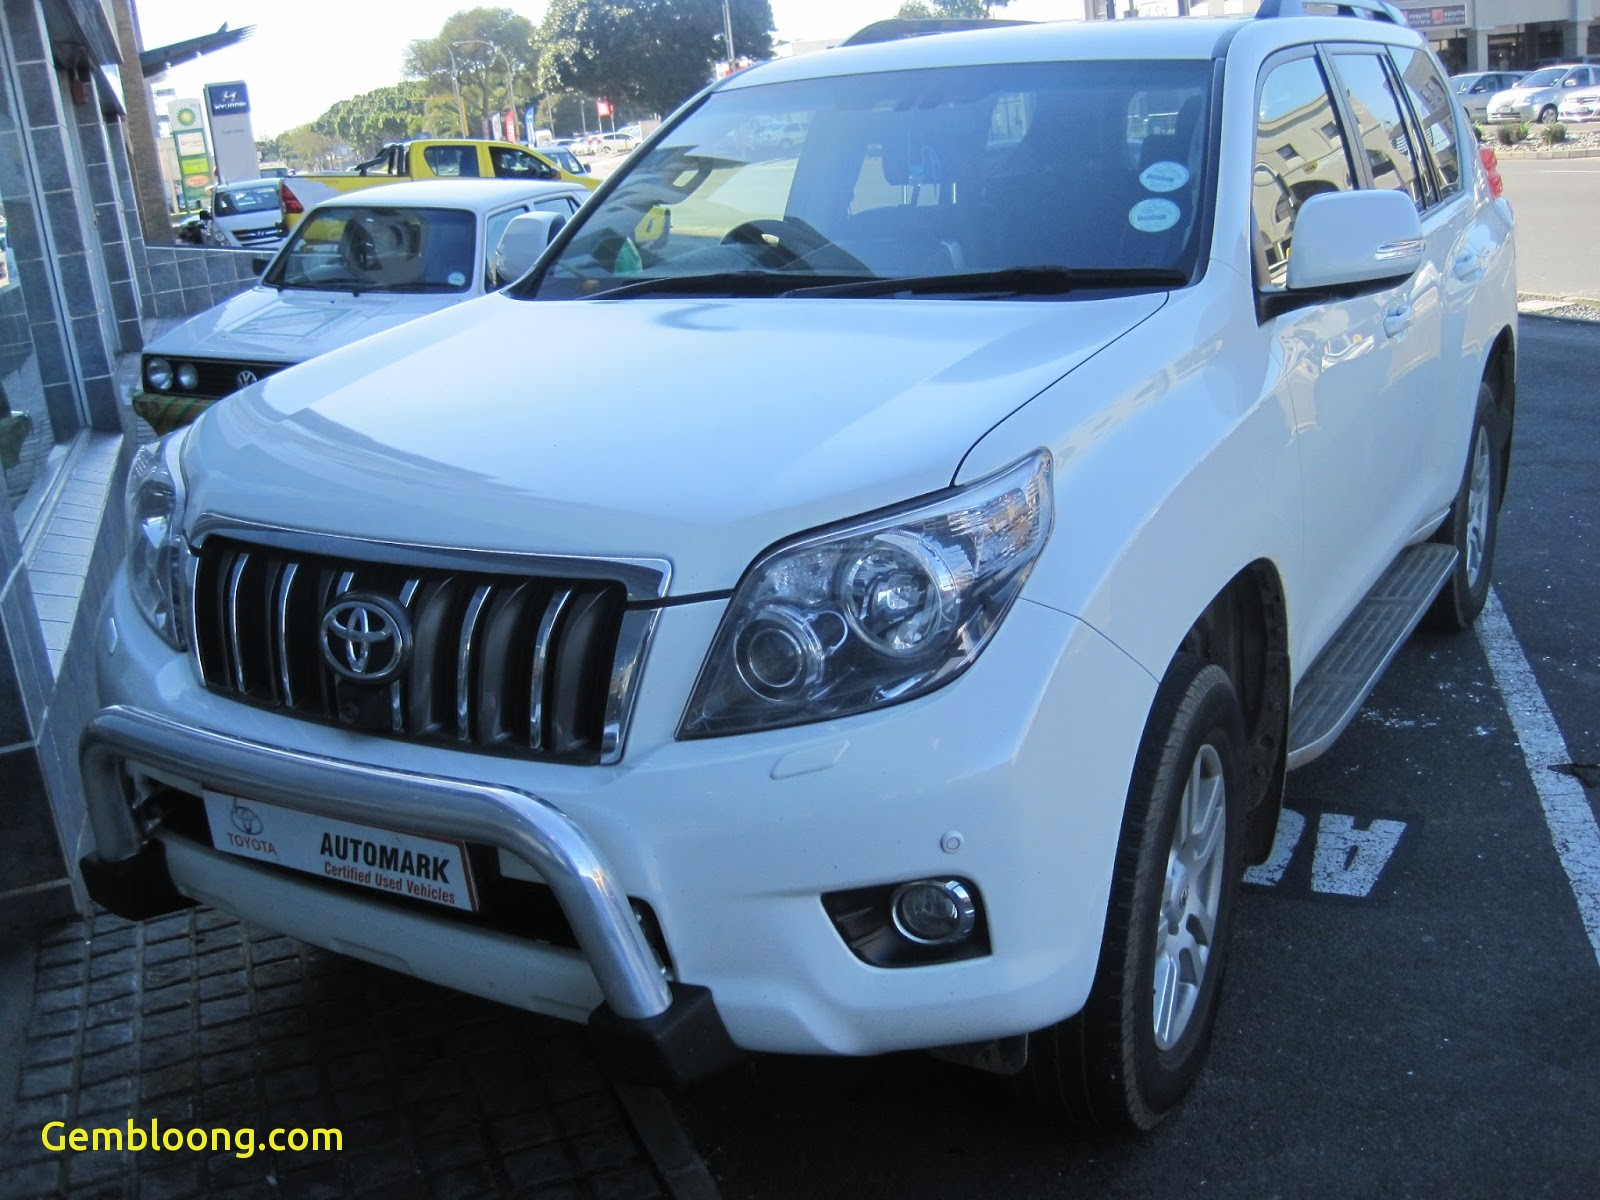 Car Sale Olx Fresh Cars for Sale by Gumtree Elegant Gumtree Olx Cars and Bakkies for